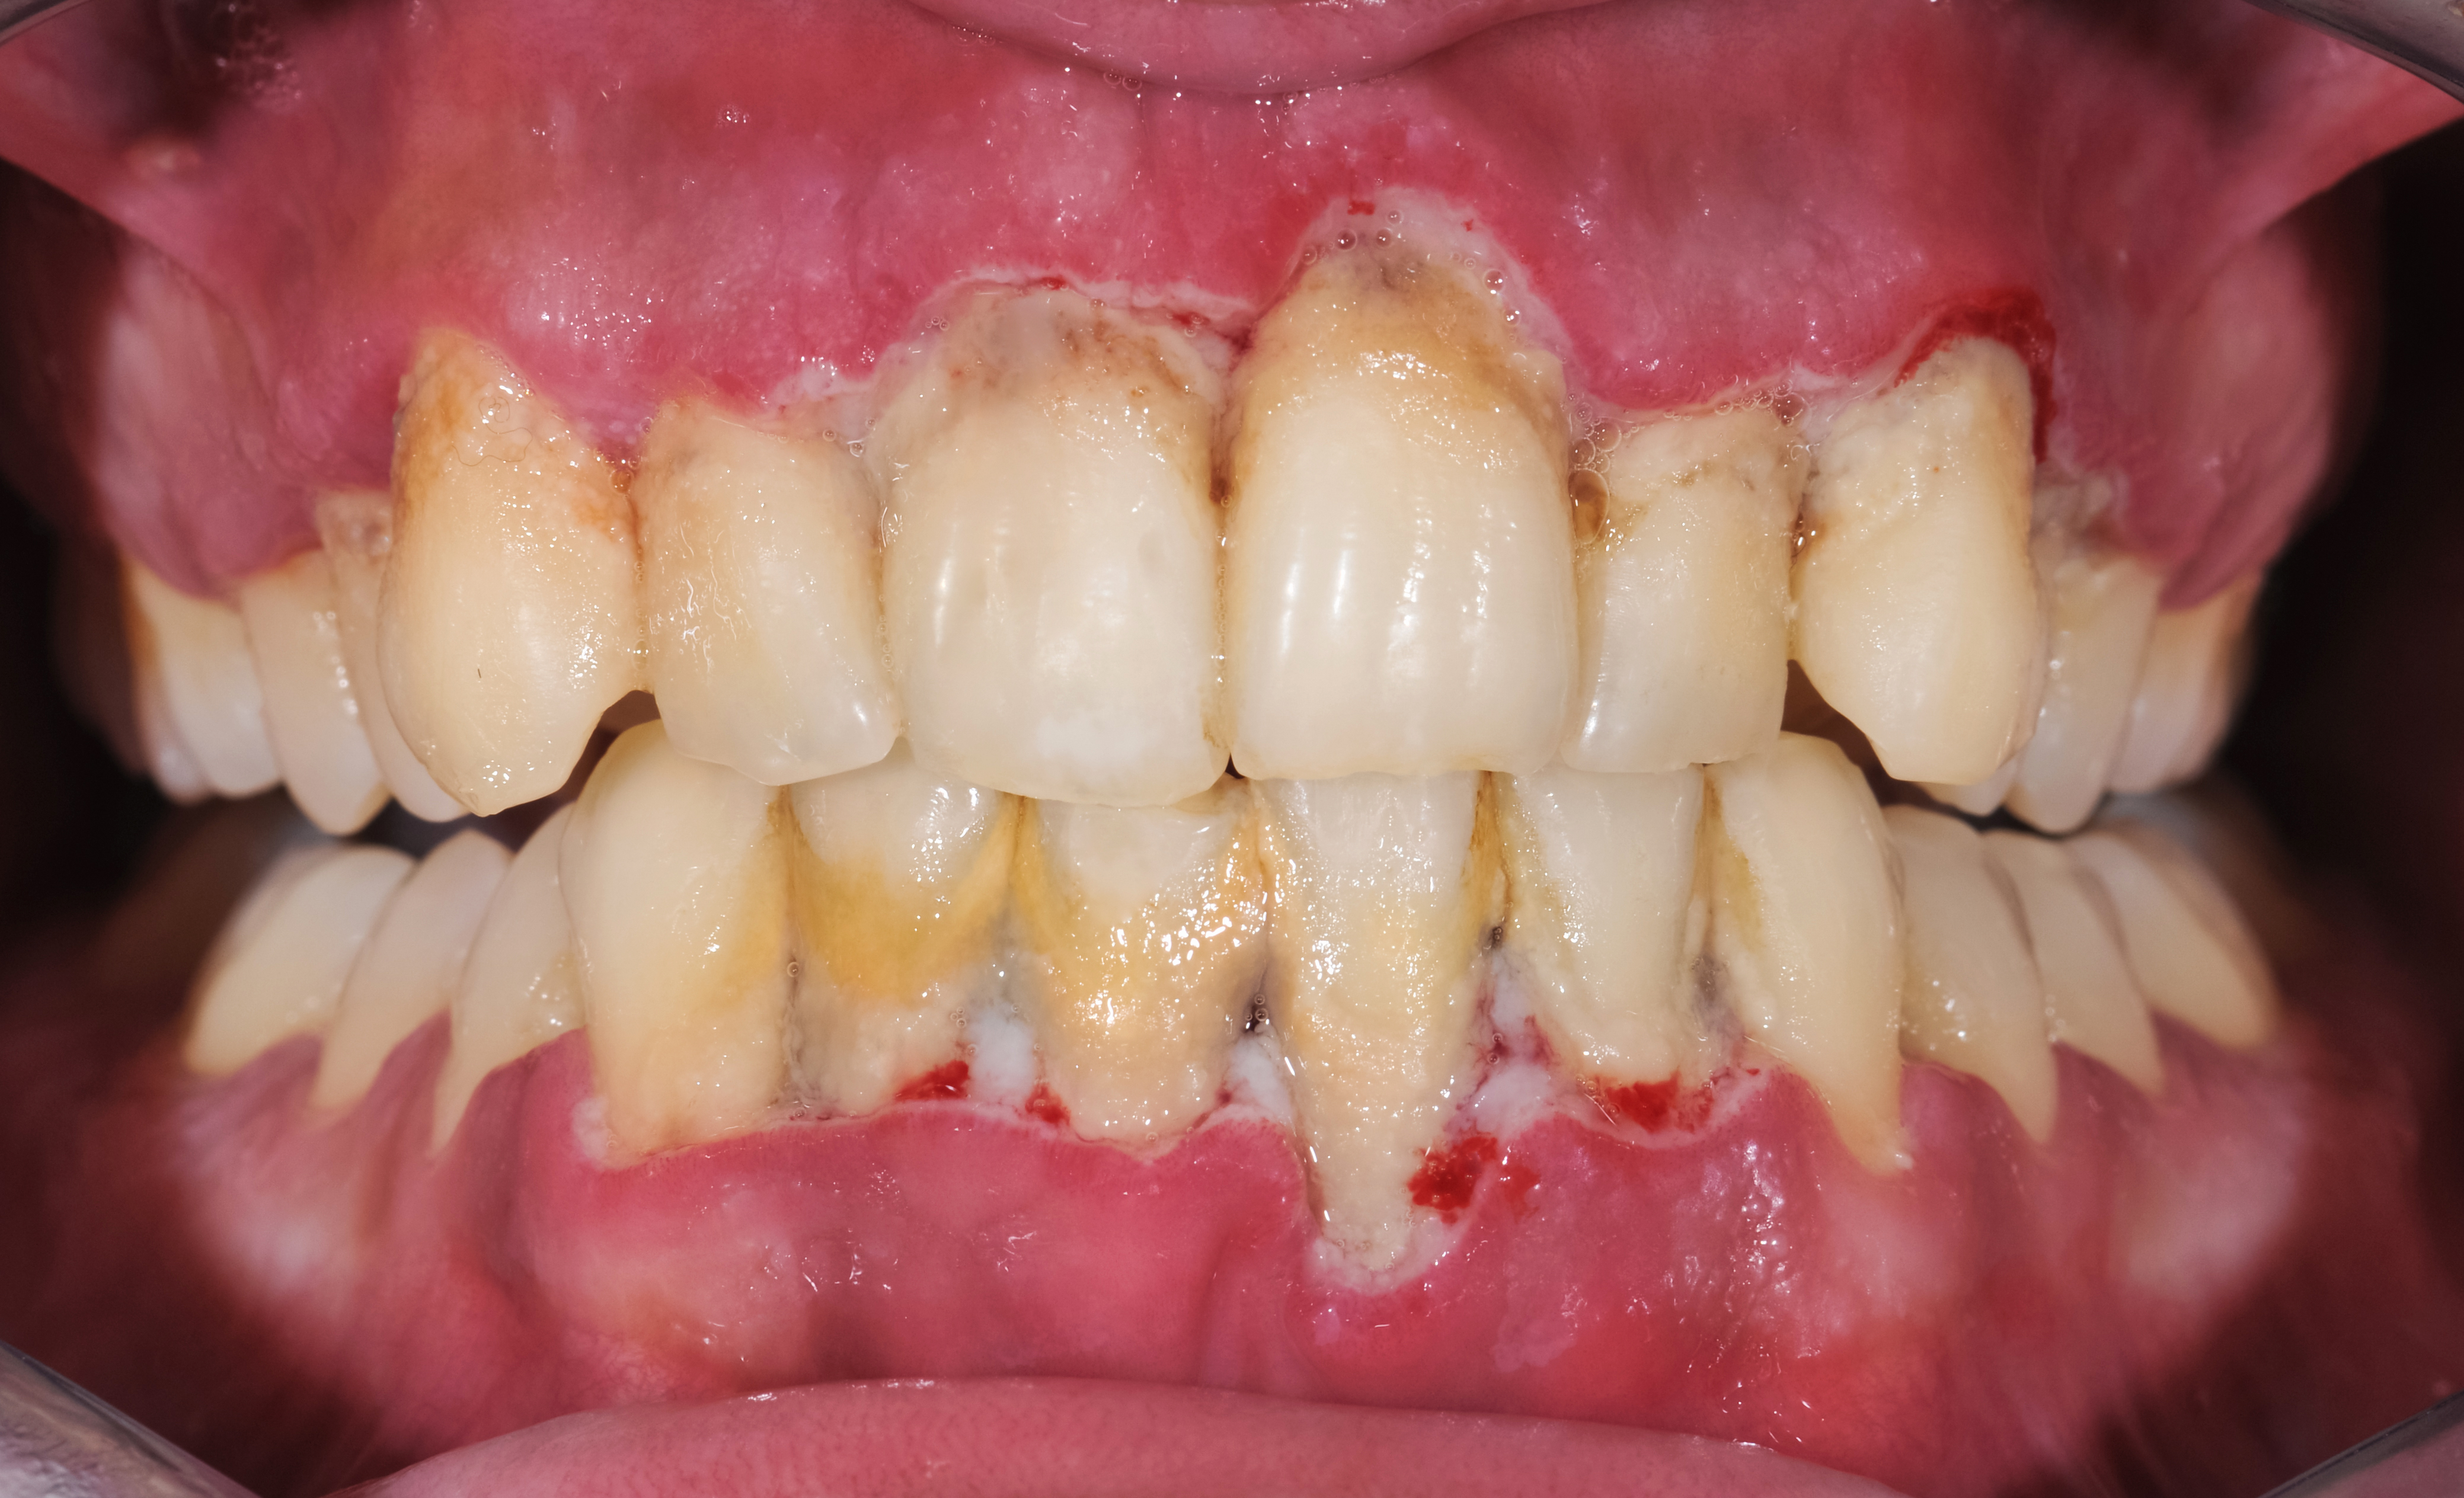 Oral Piercings And Oral Health What You Should Know